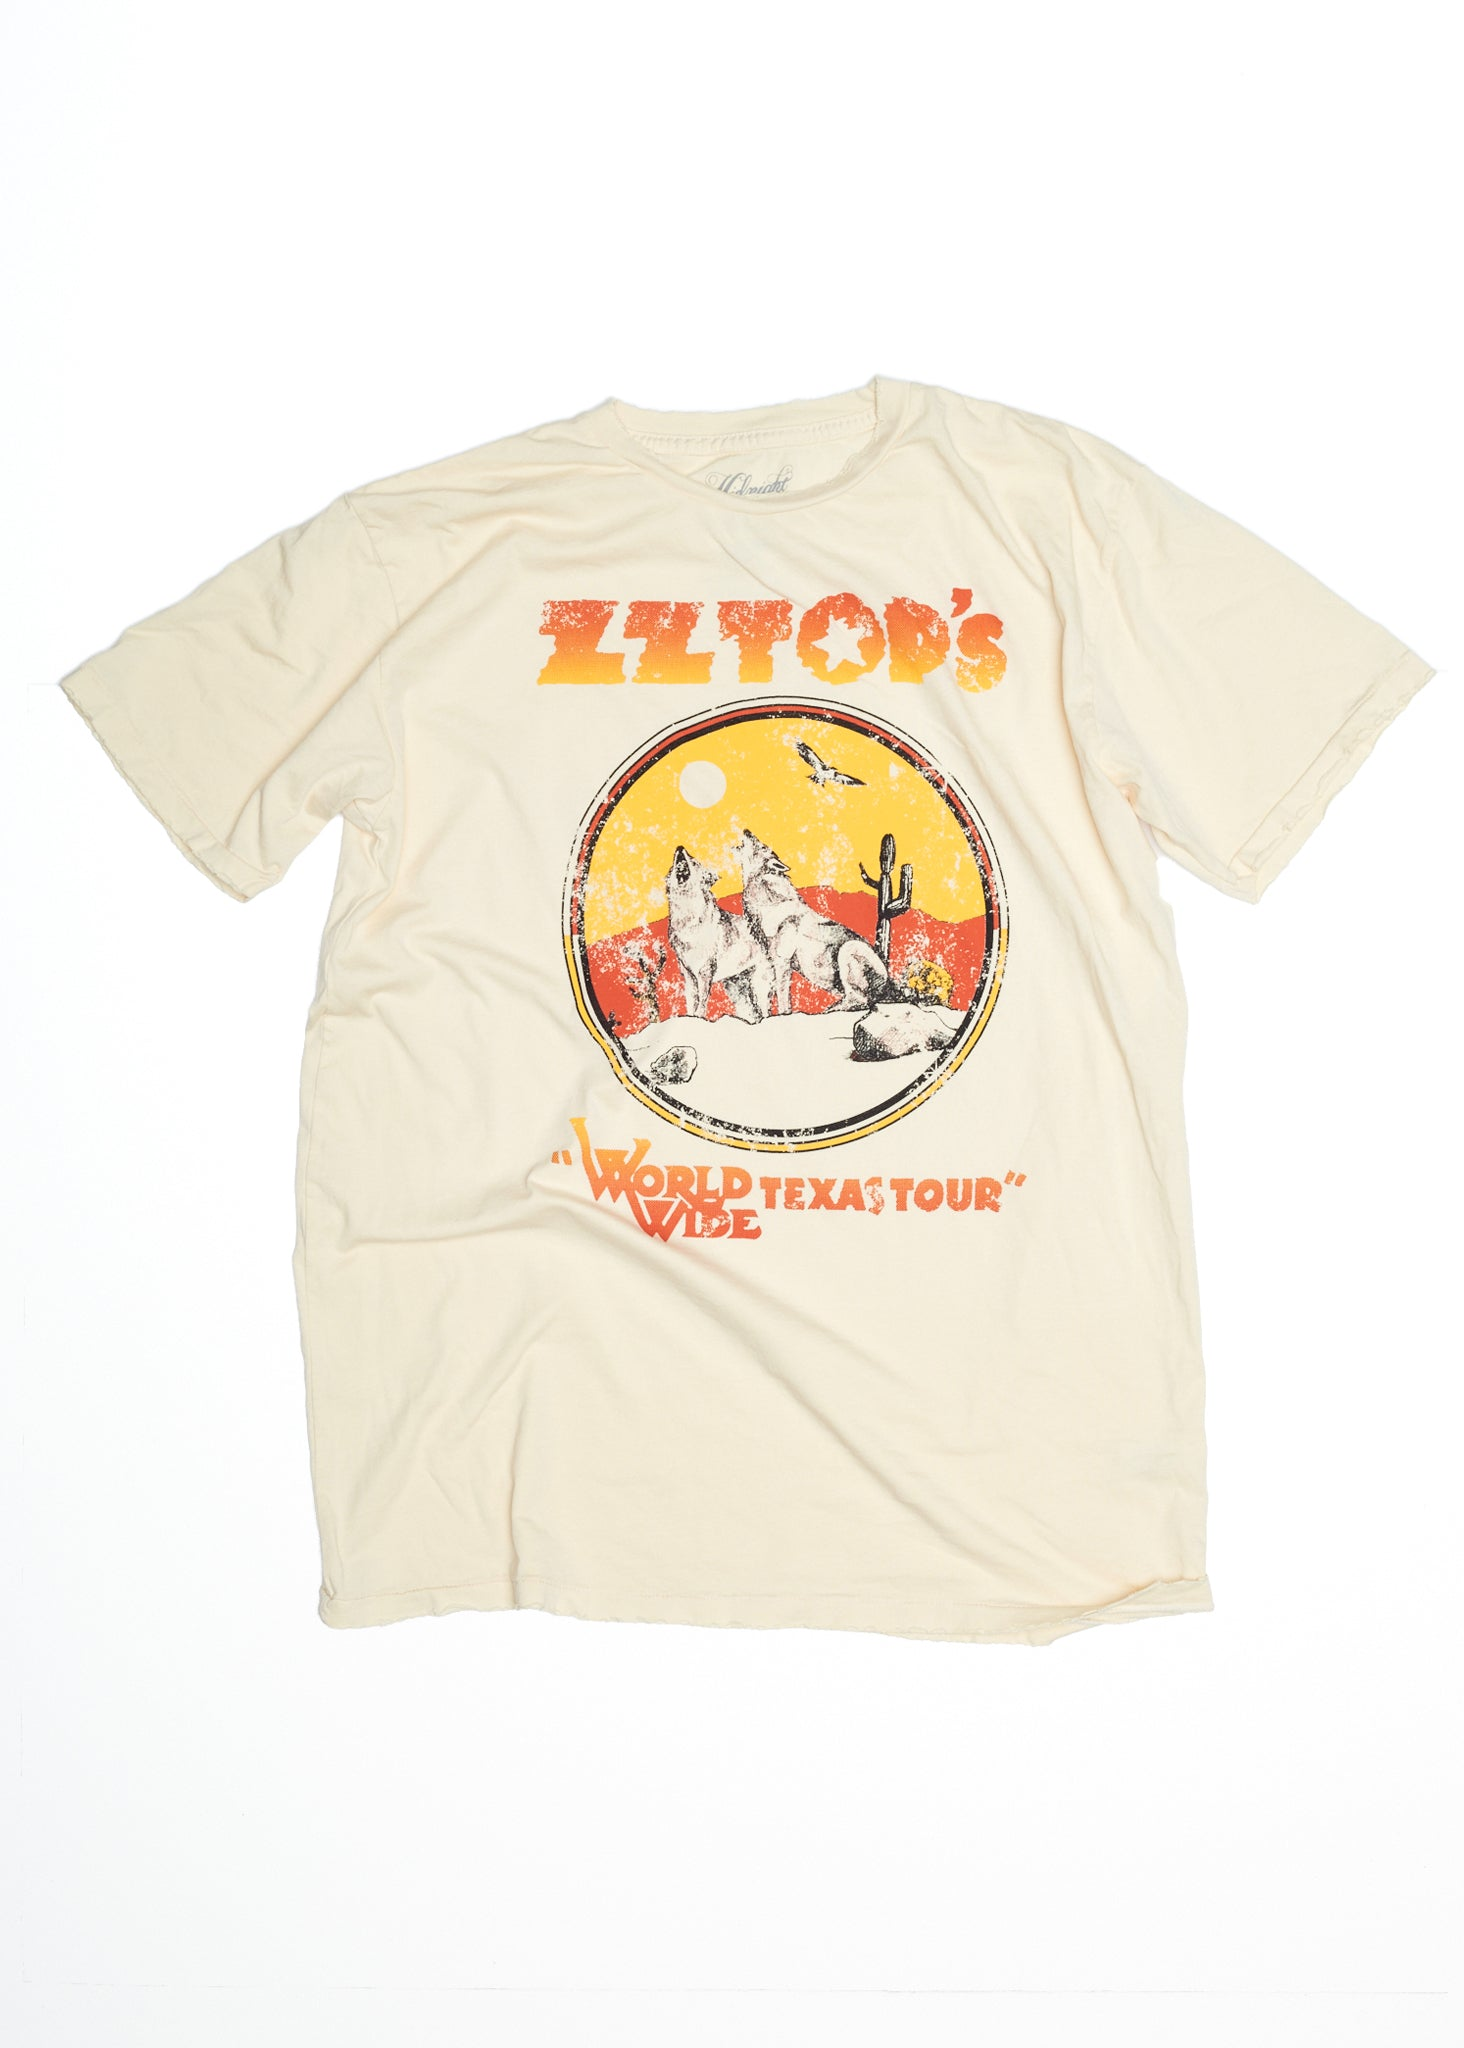 ZZ Top WorldWide Texas Tour Men's Crew - Summer Melon